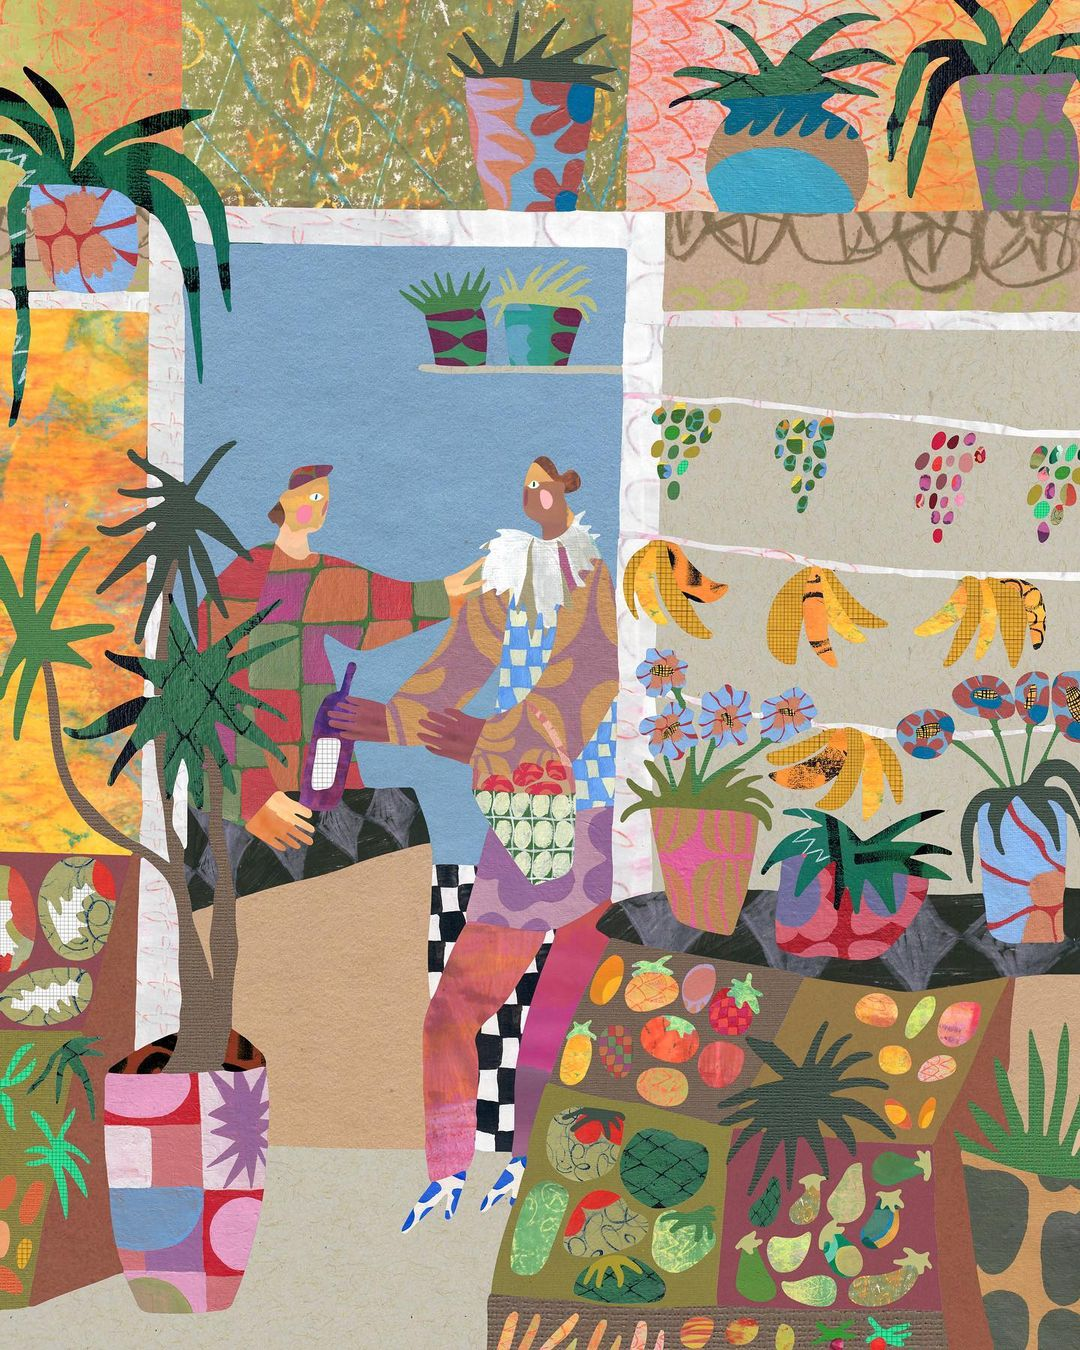 Imogen Crossland: Ode to the Good Times 10